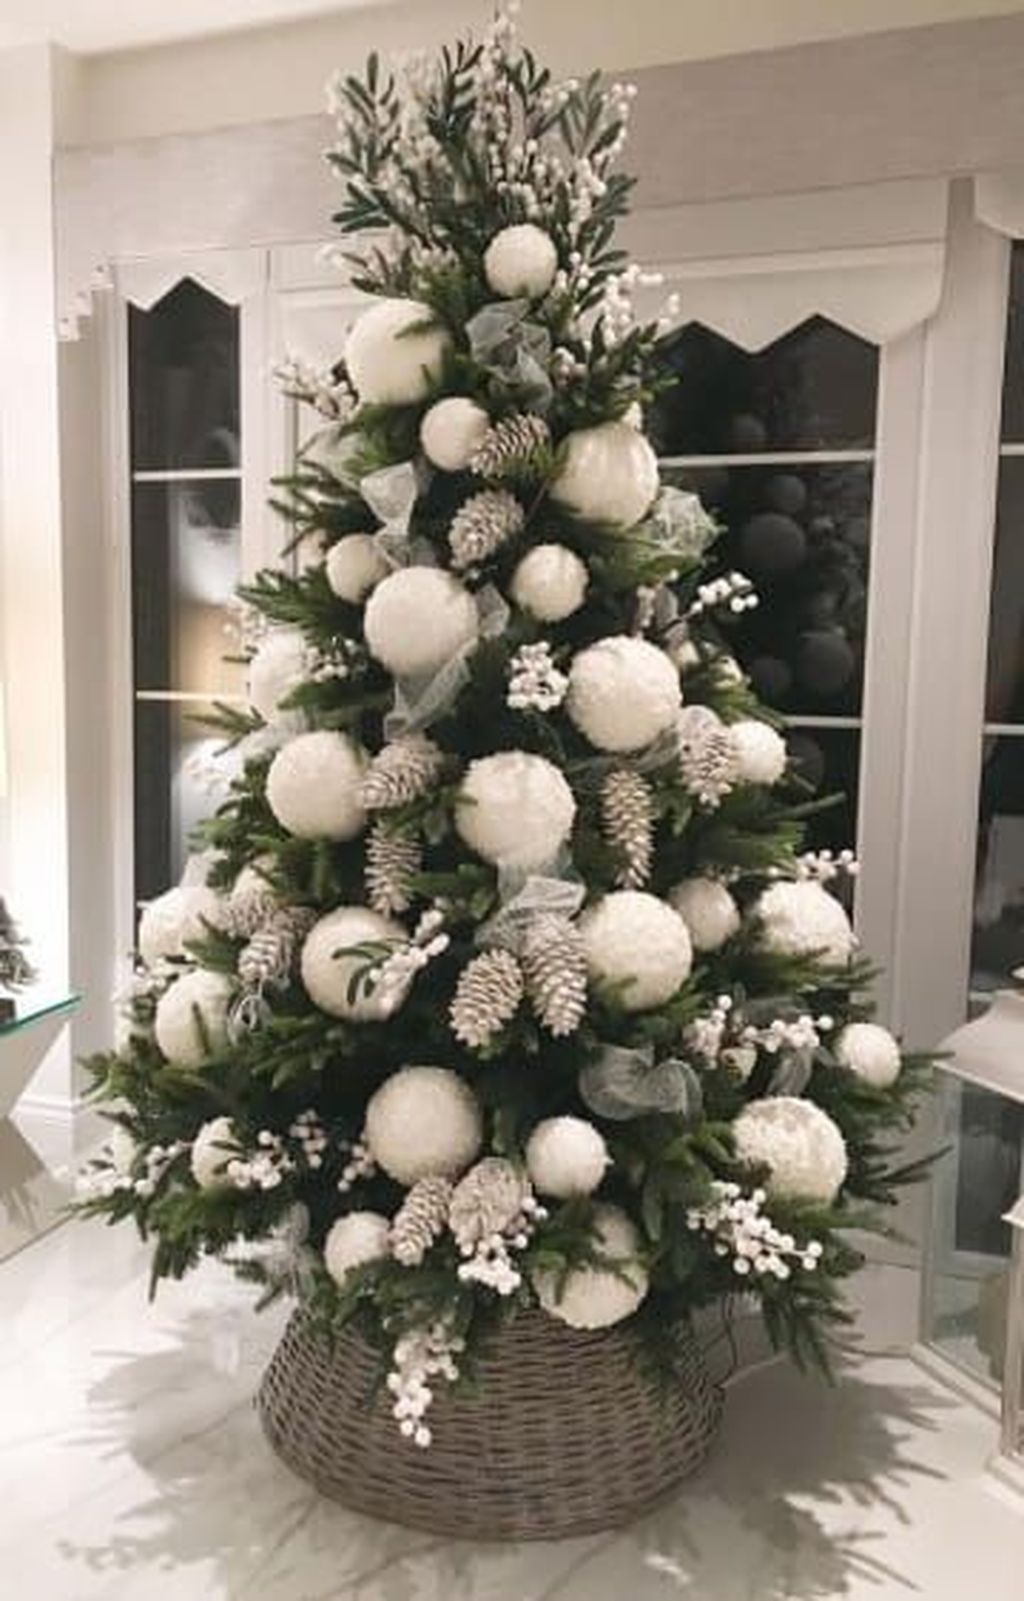 35 Inspiring Christmas Tree Ideas Best For Your Living Room Decor Simple Christmas Tree Simple Christmas Tree Decorations Diy Christmas Tree